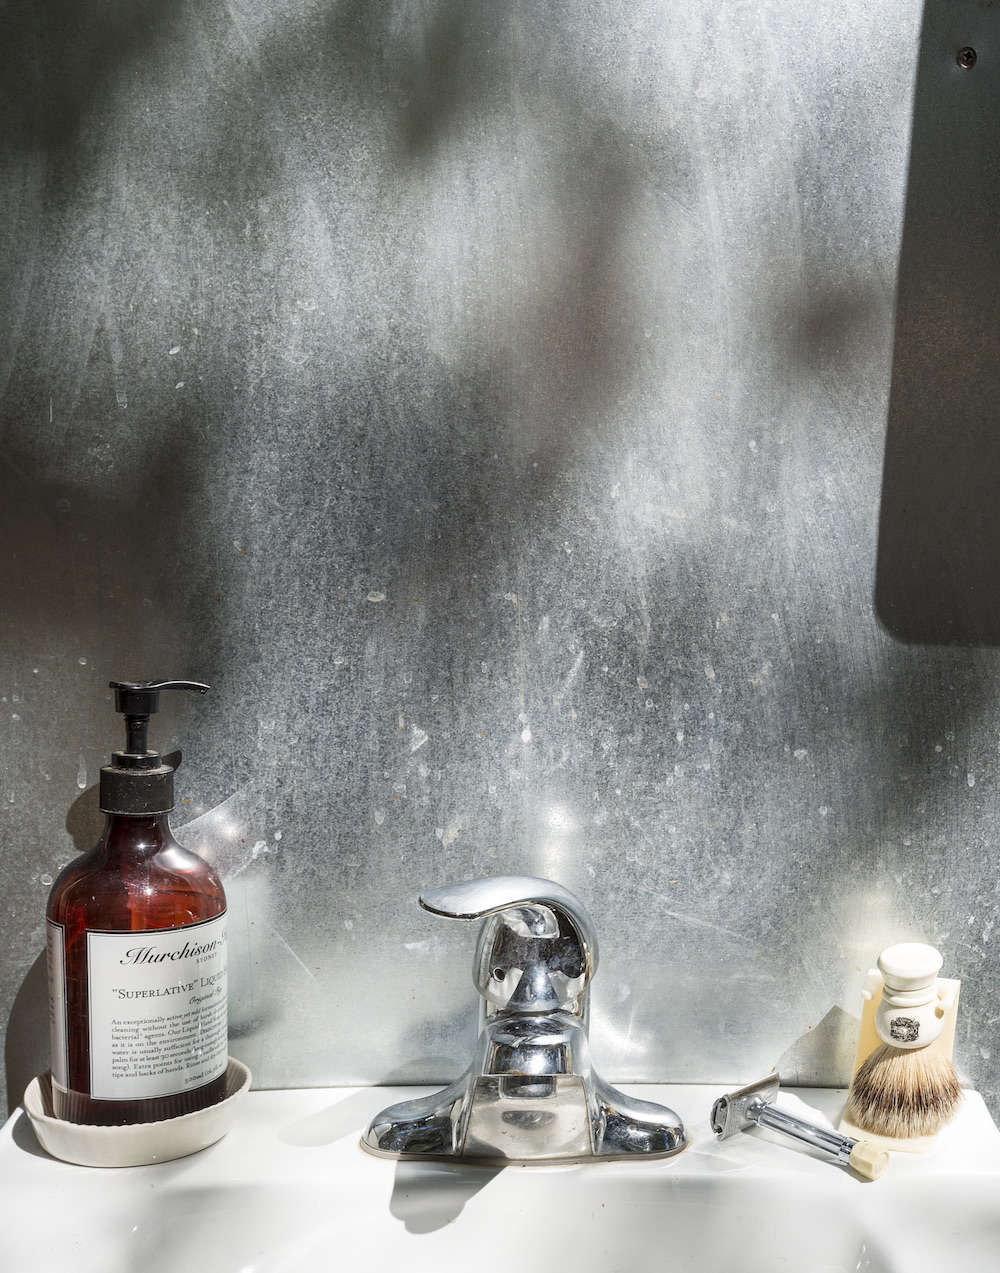 Outdoor Sink with Stainless Backsplash